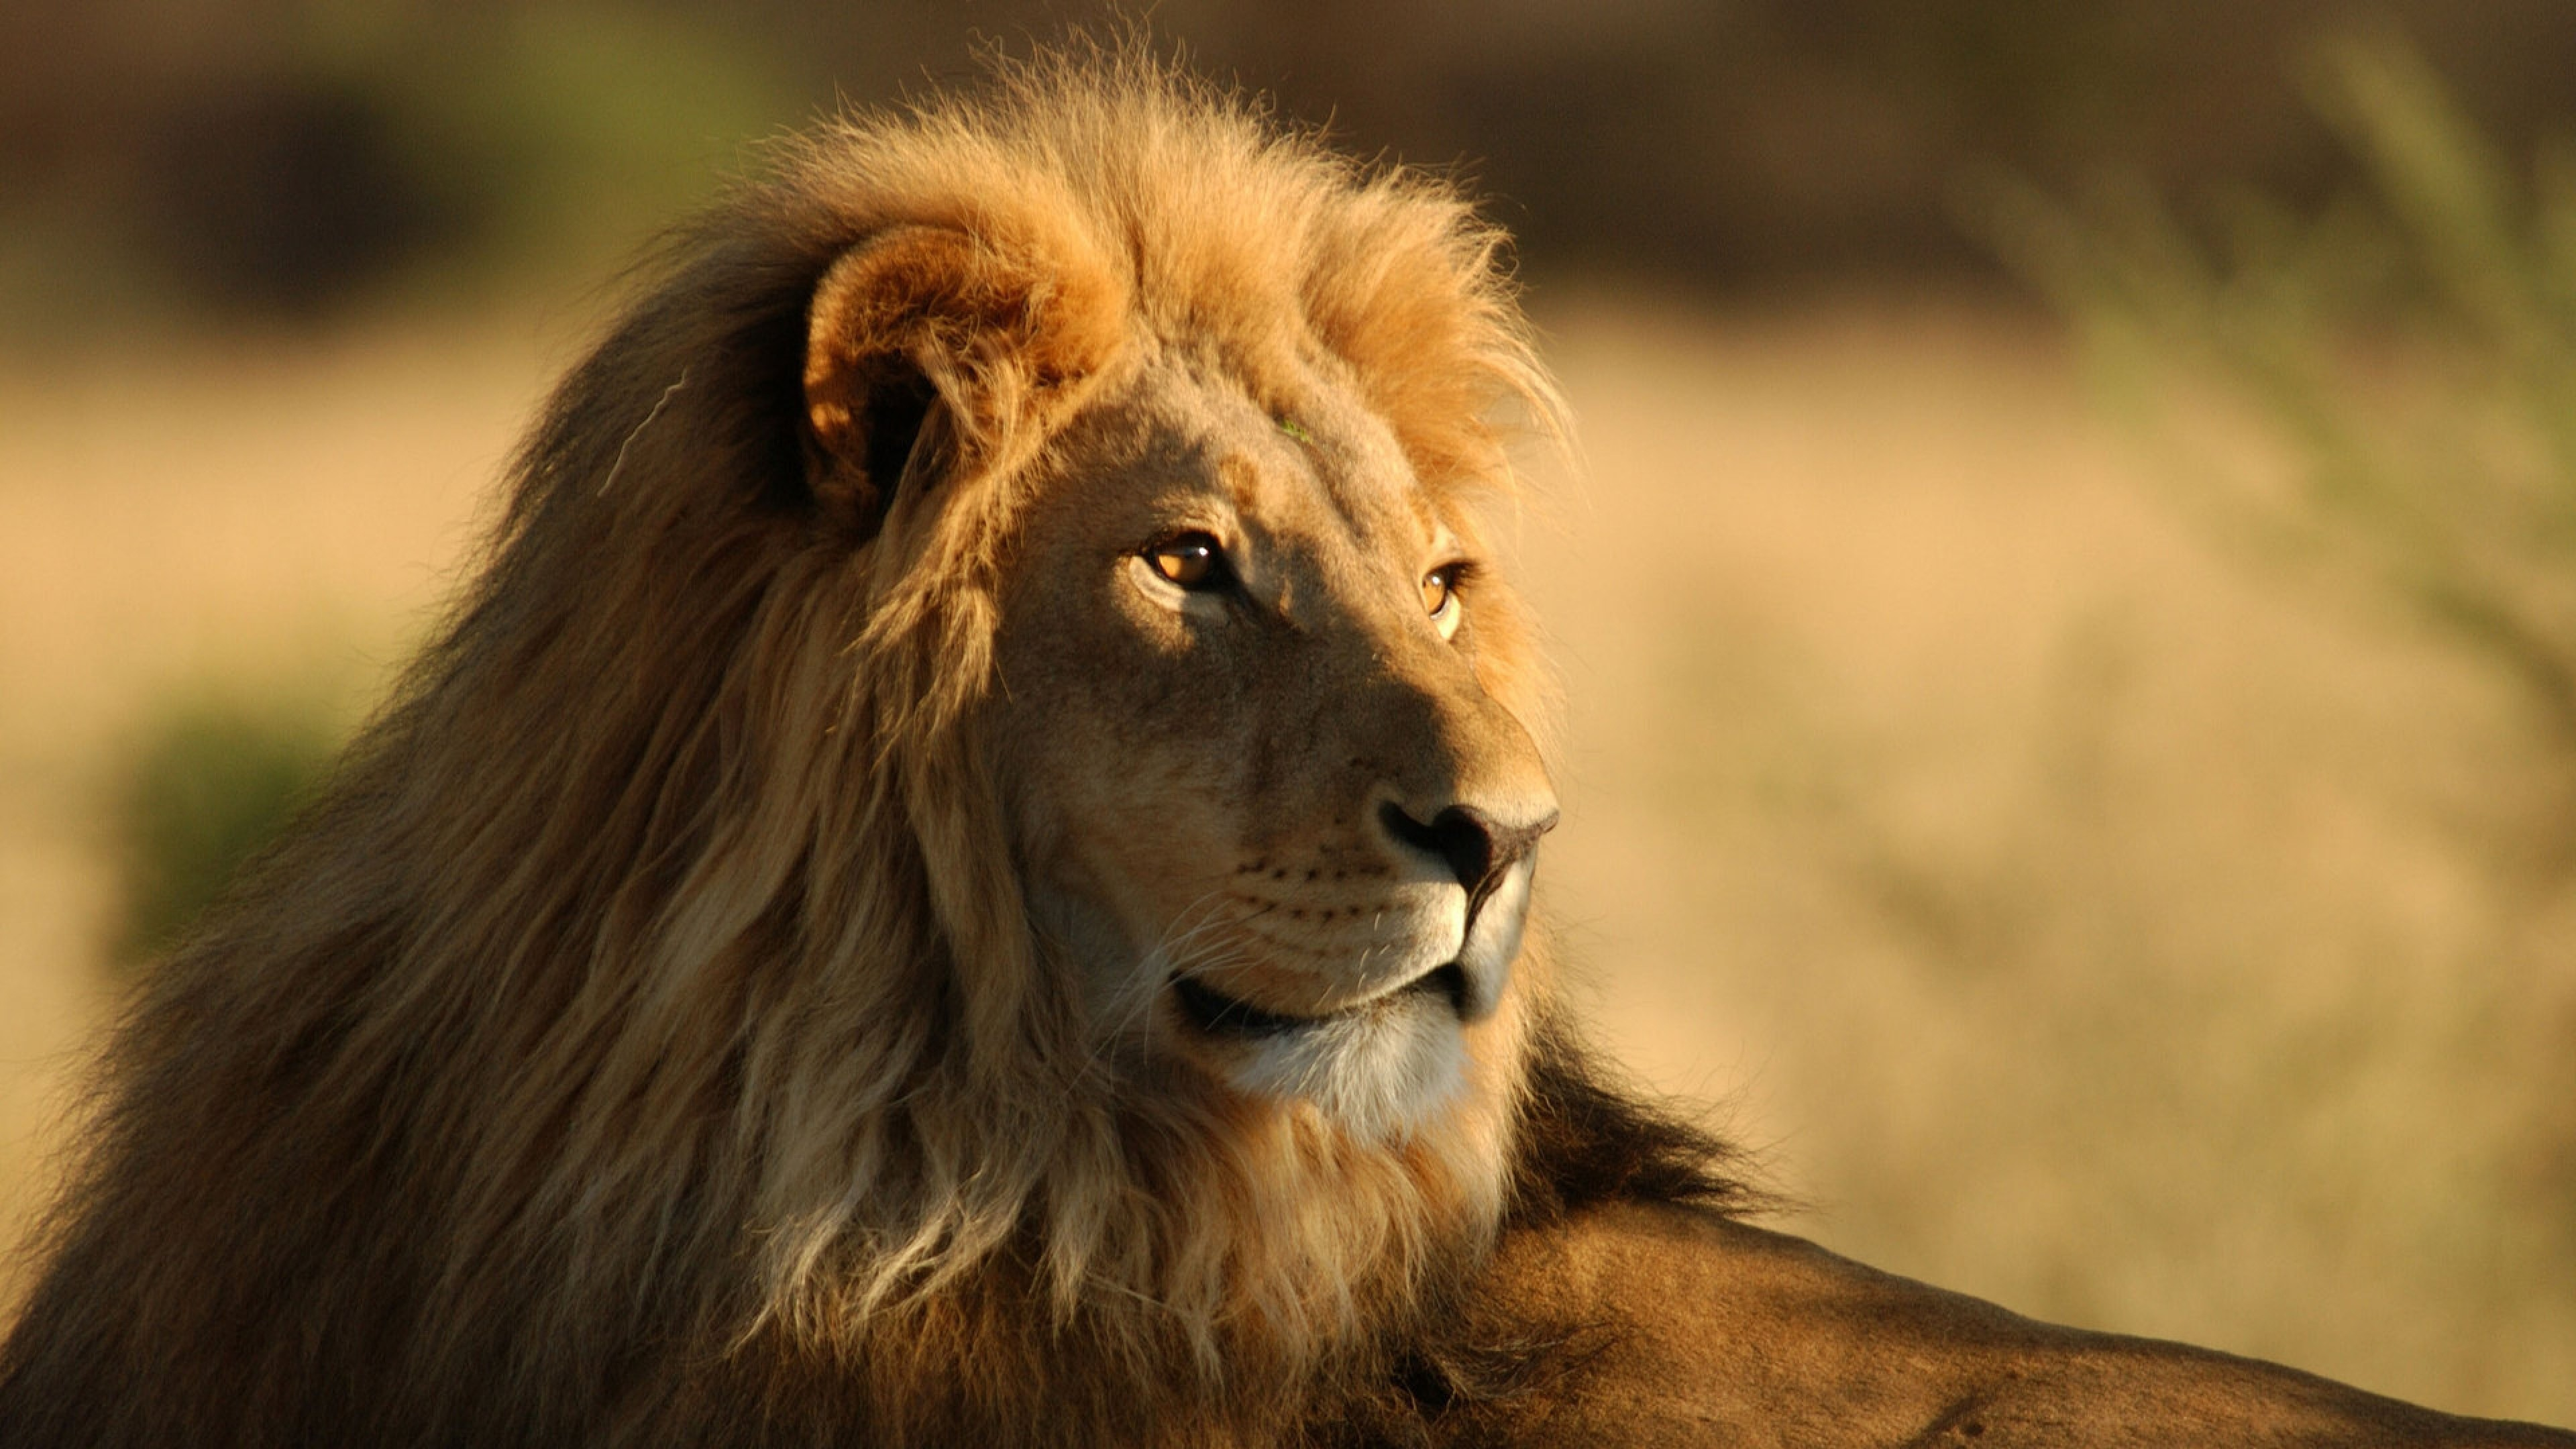 Res: 3840x2160, Lion Wallpapers High Definition